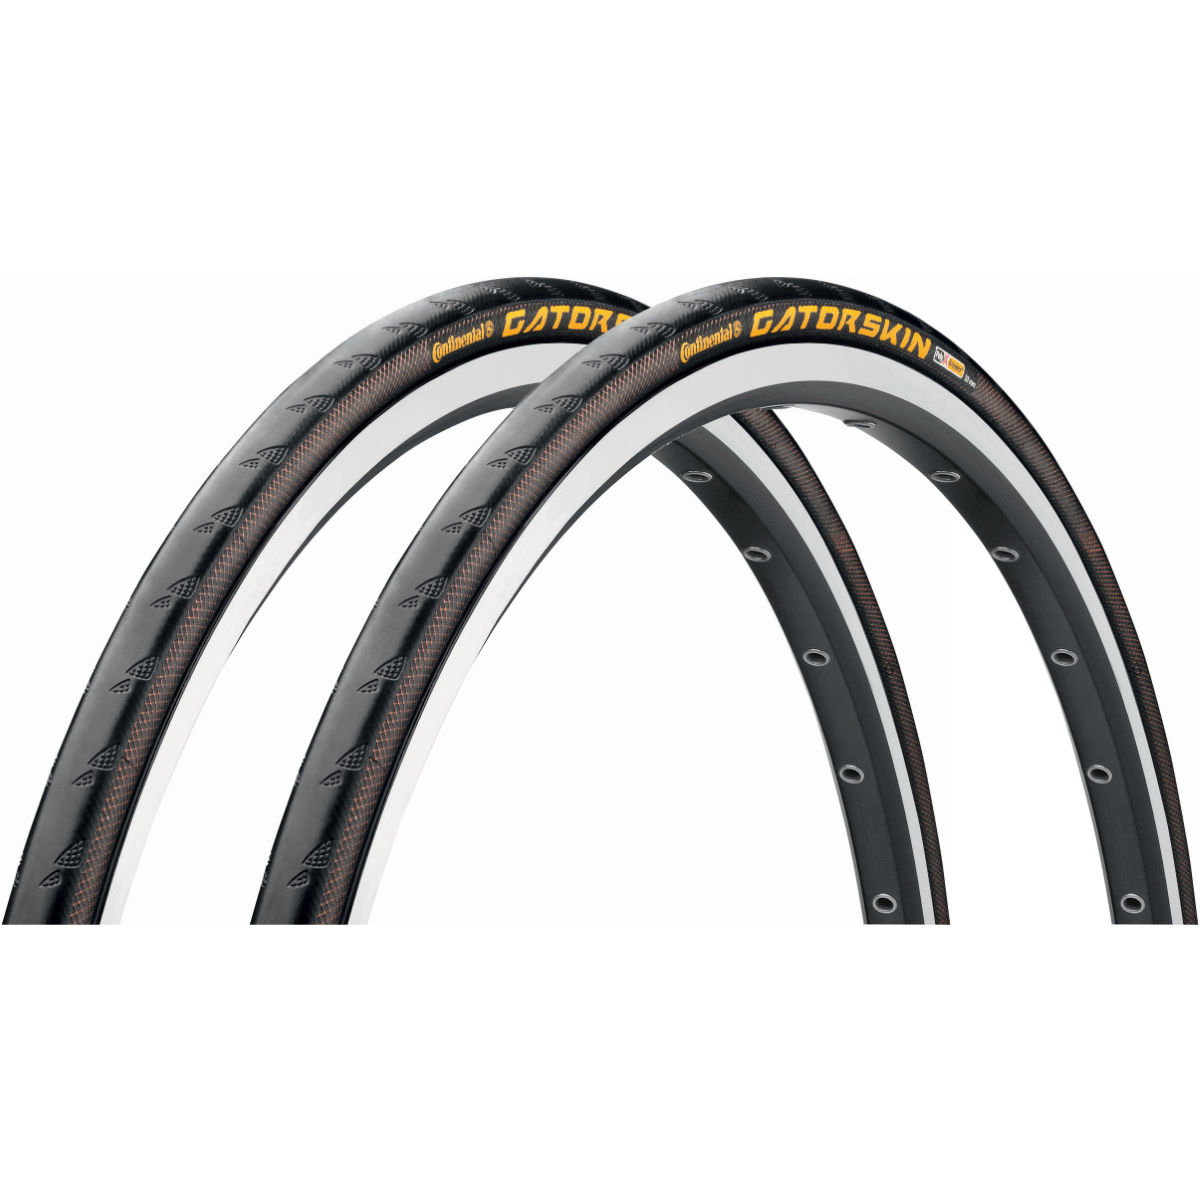 Continental Continental GatorSkin Road Wire Bead Tyres 23c - Pair   Tyres